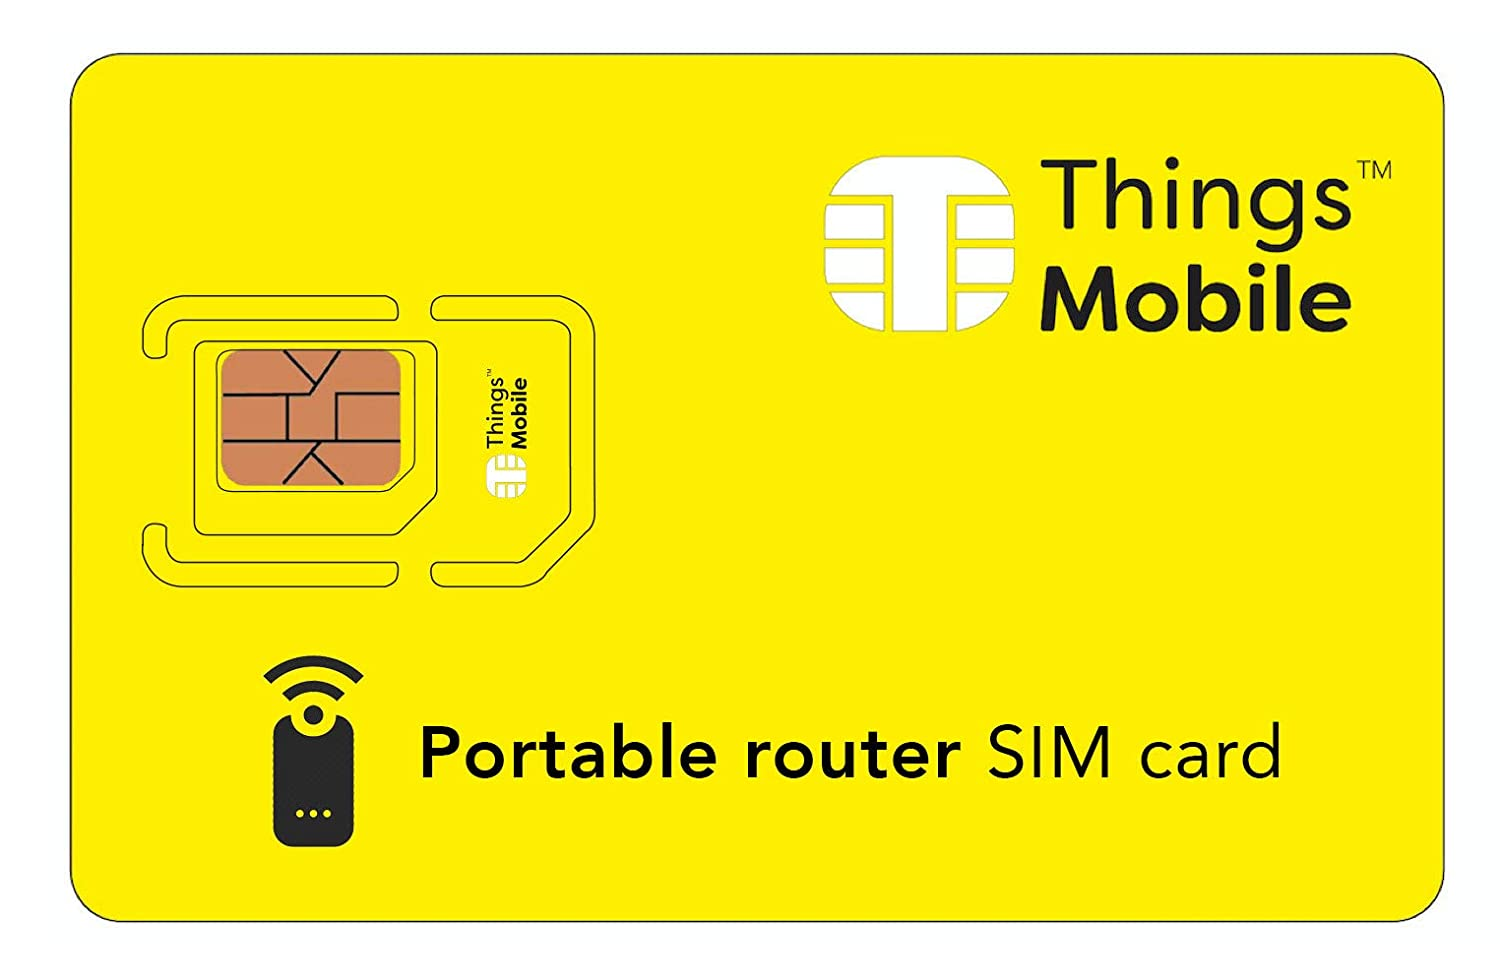 Tarjeta SIM para PORTABLE ROUTER- Things Mobile: Amazon.es ...